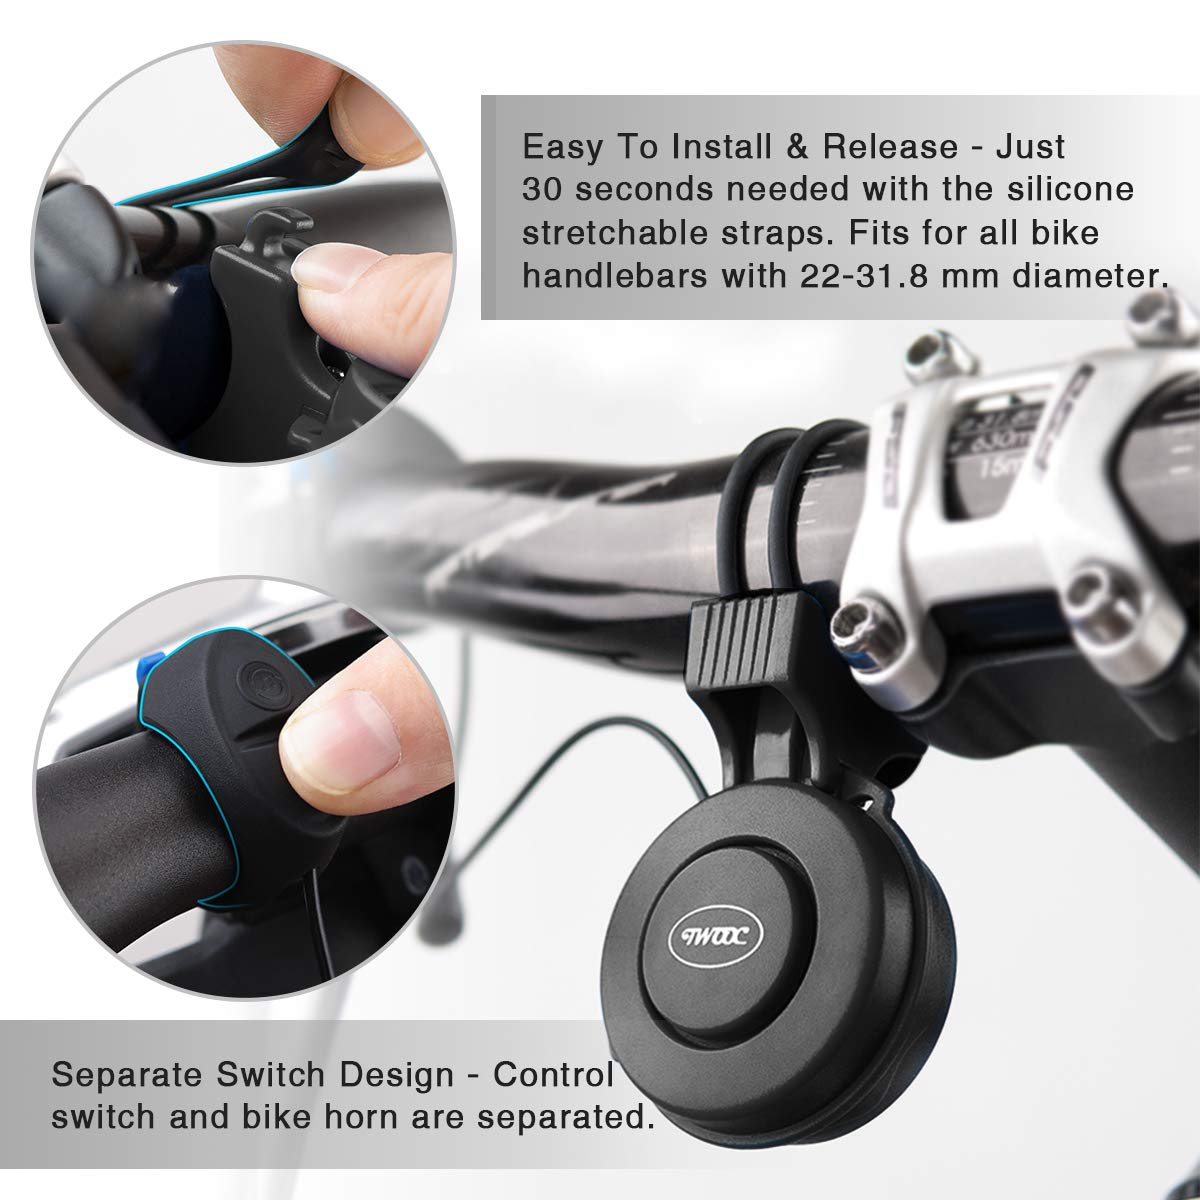 Amazon.com: Coolrunner Mini Electric Bike Horn, Electronic ...